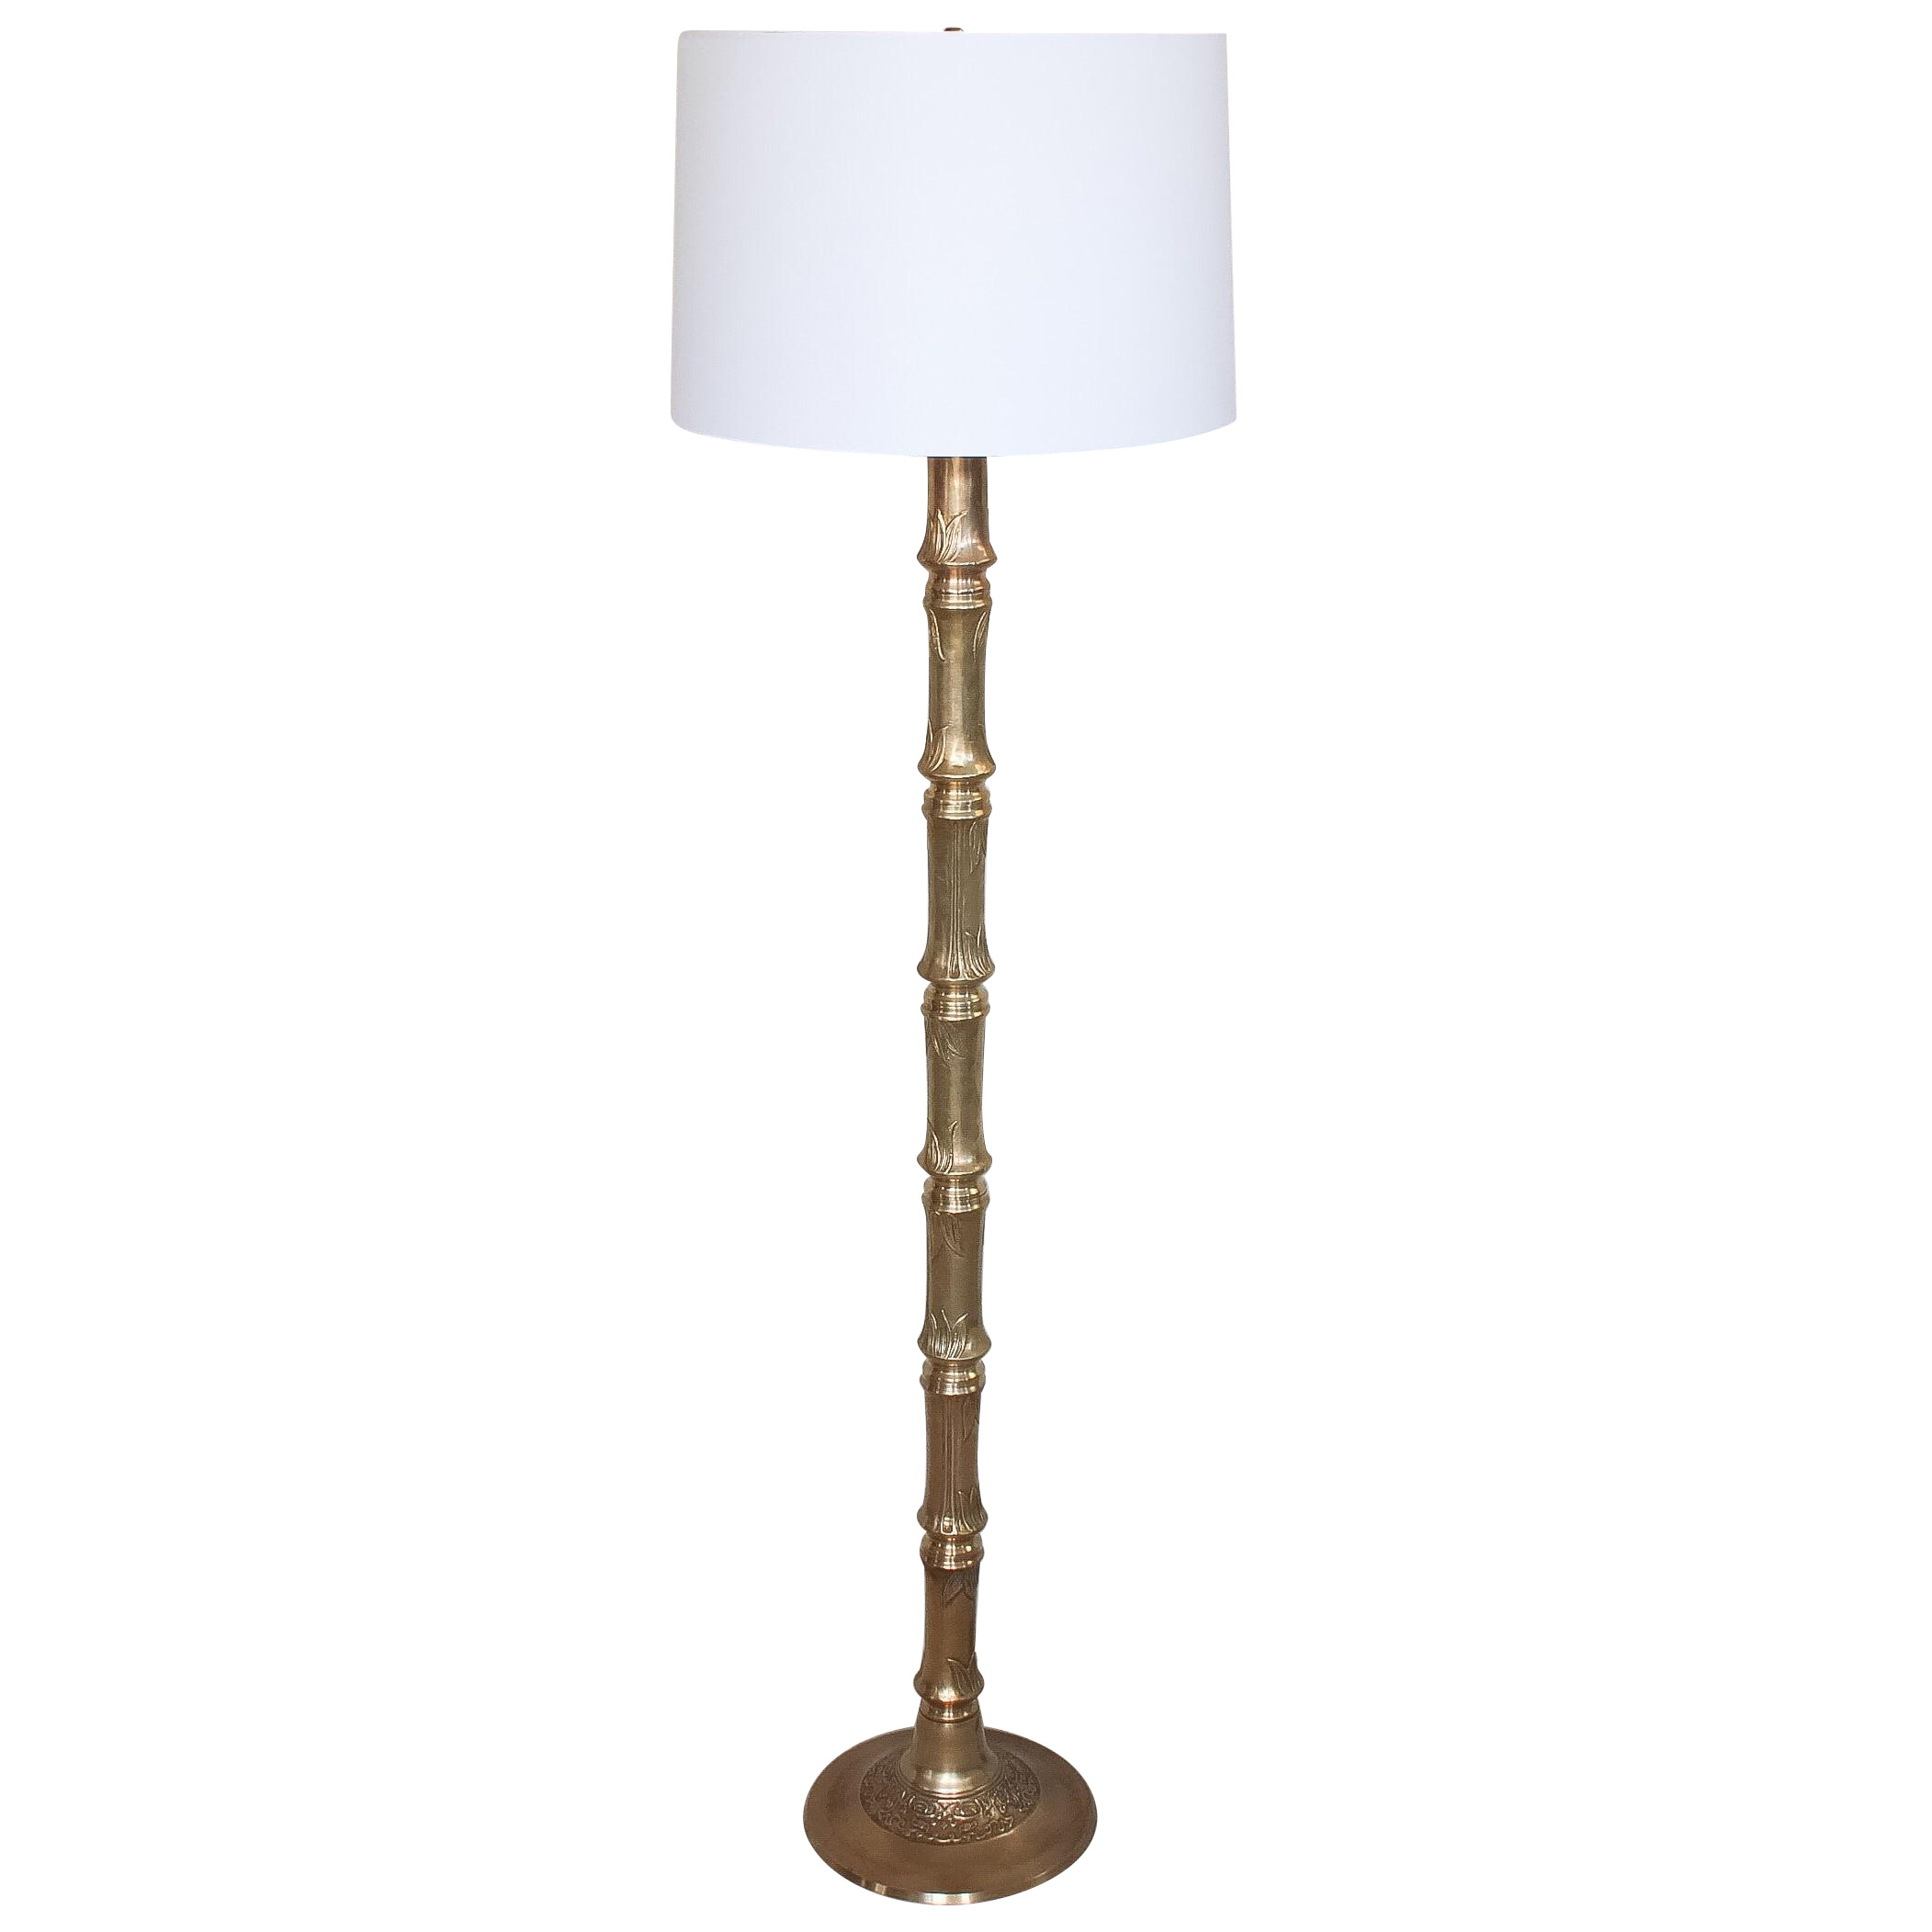 Hollywood Regency Brass Faux Bamboo Floor Lamp Chairish